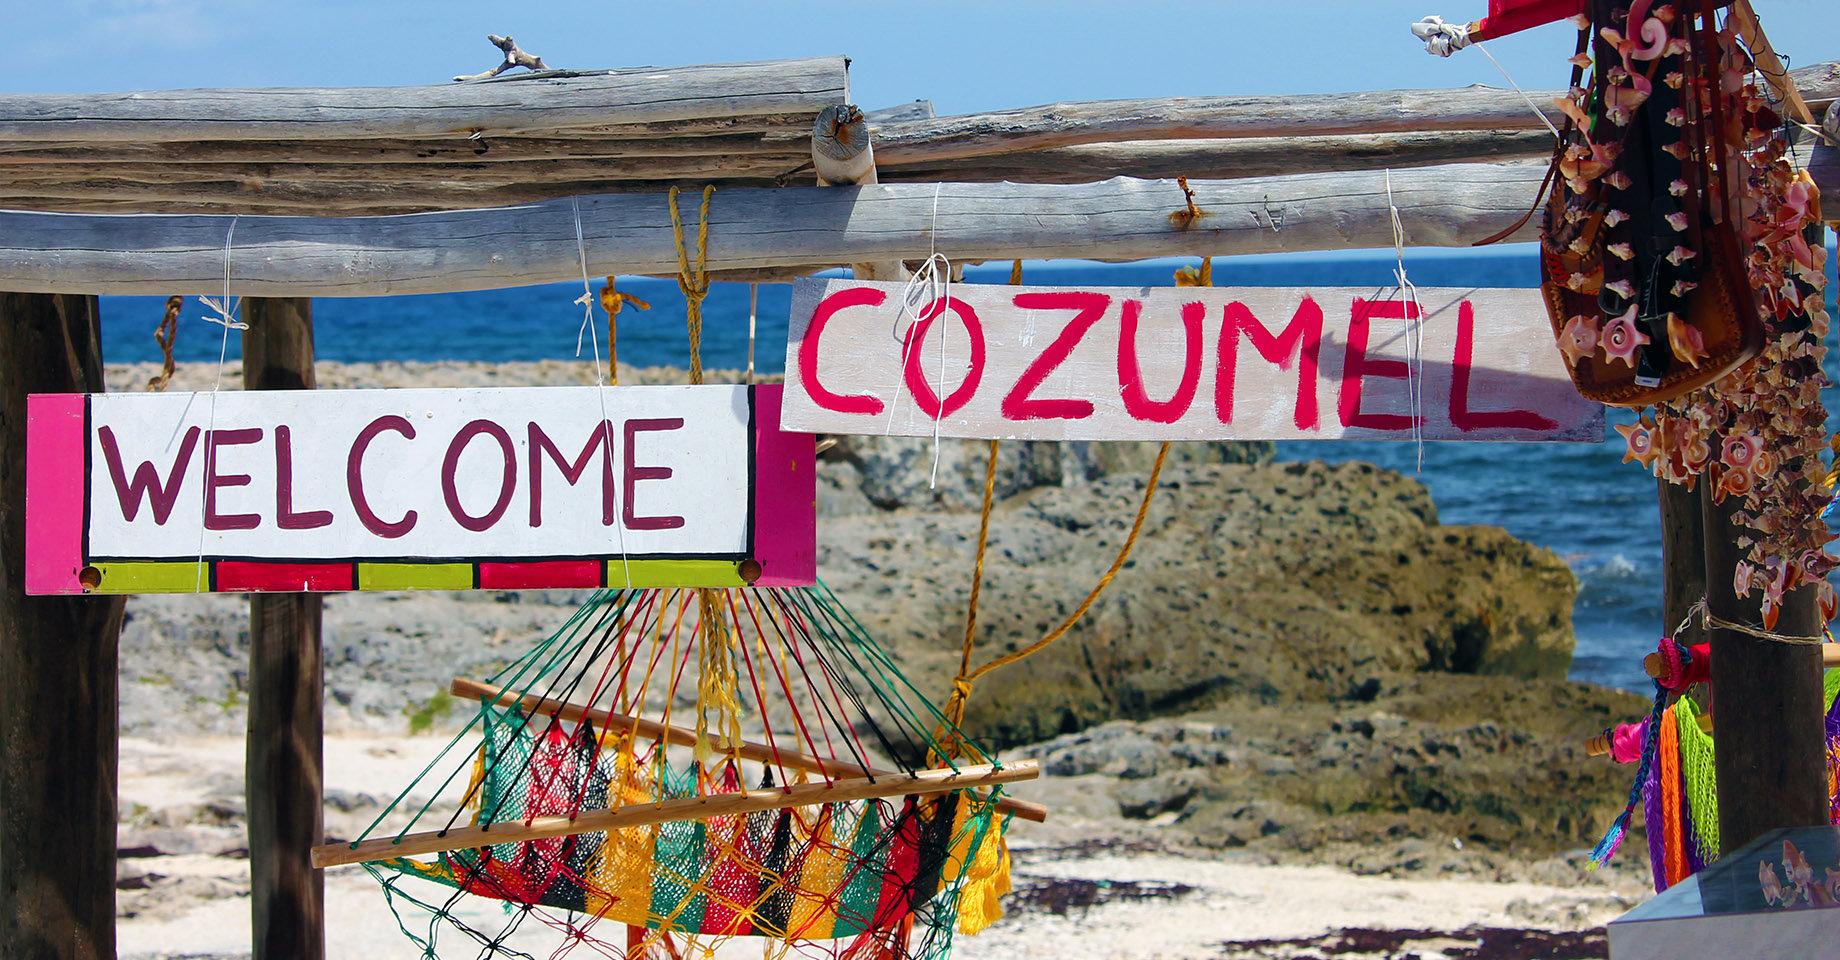 Welcome to Cozumel